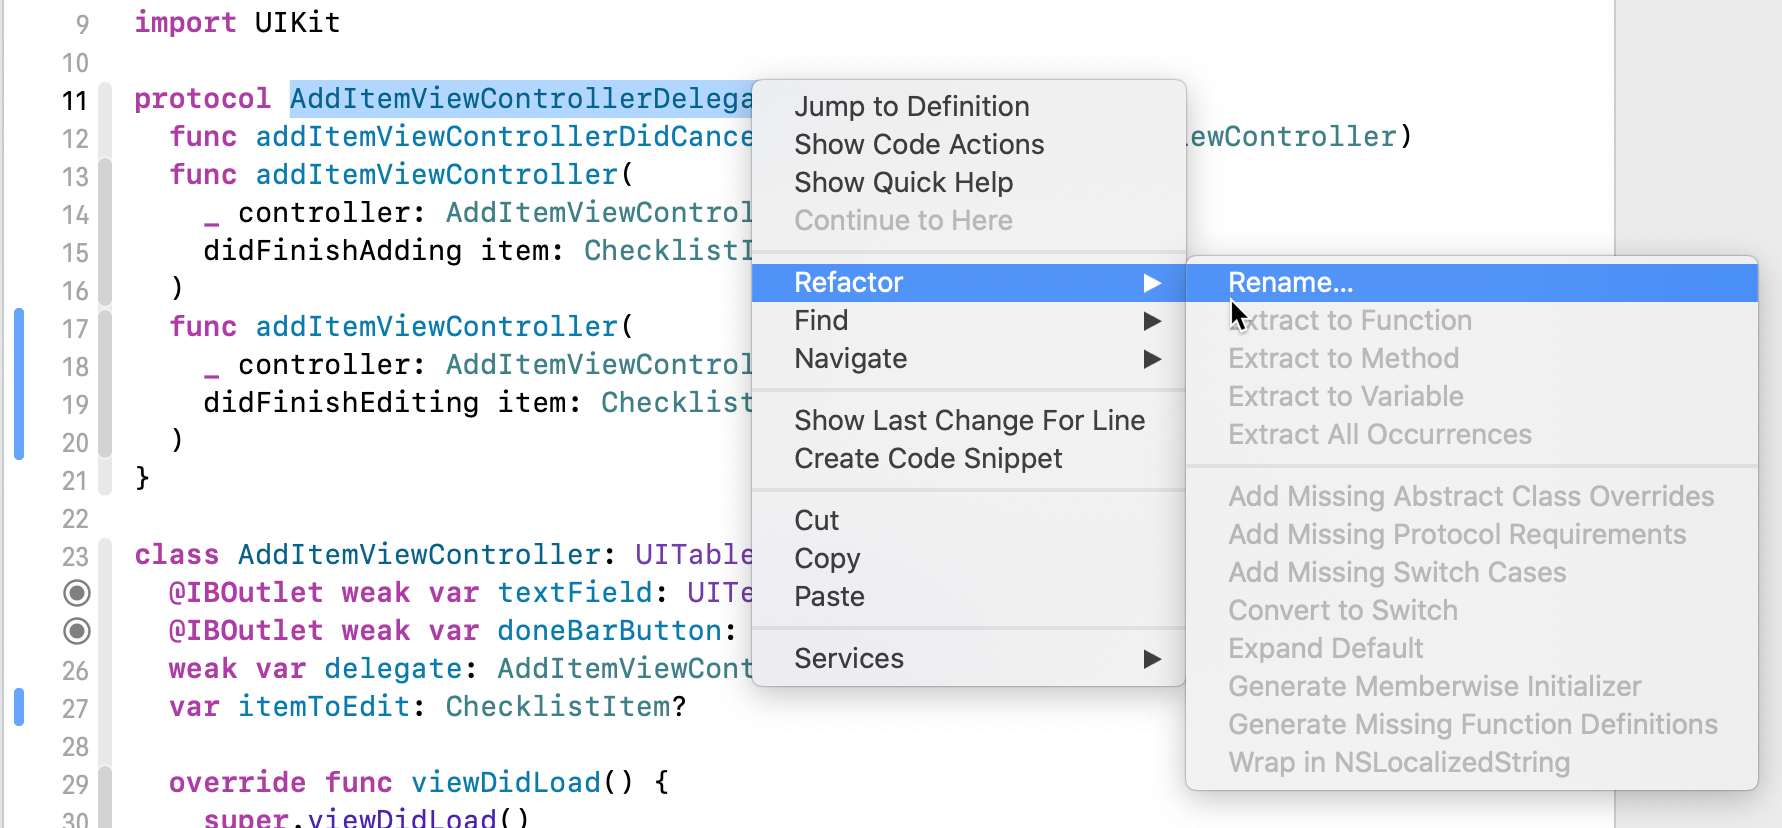 The Xcode context menu